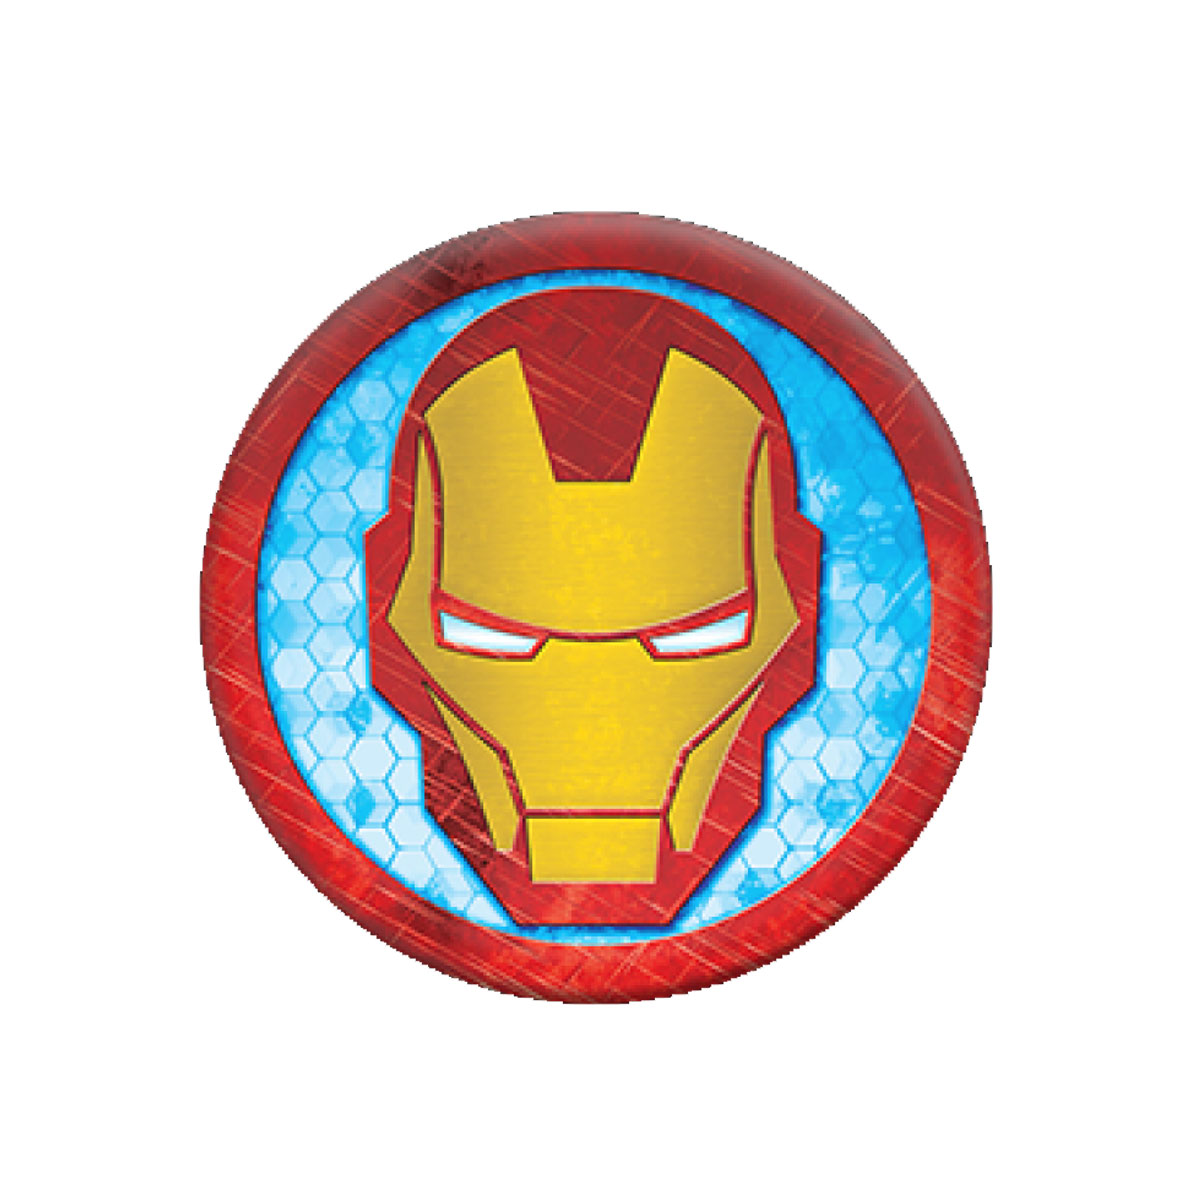 Popsockets Single - Iron Man Icon